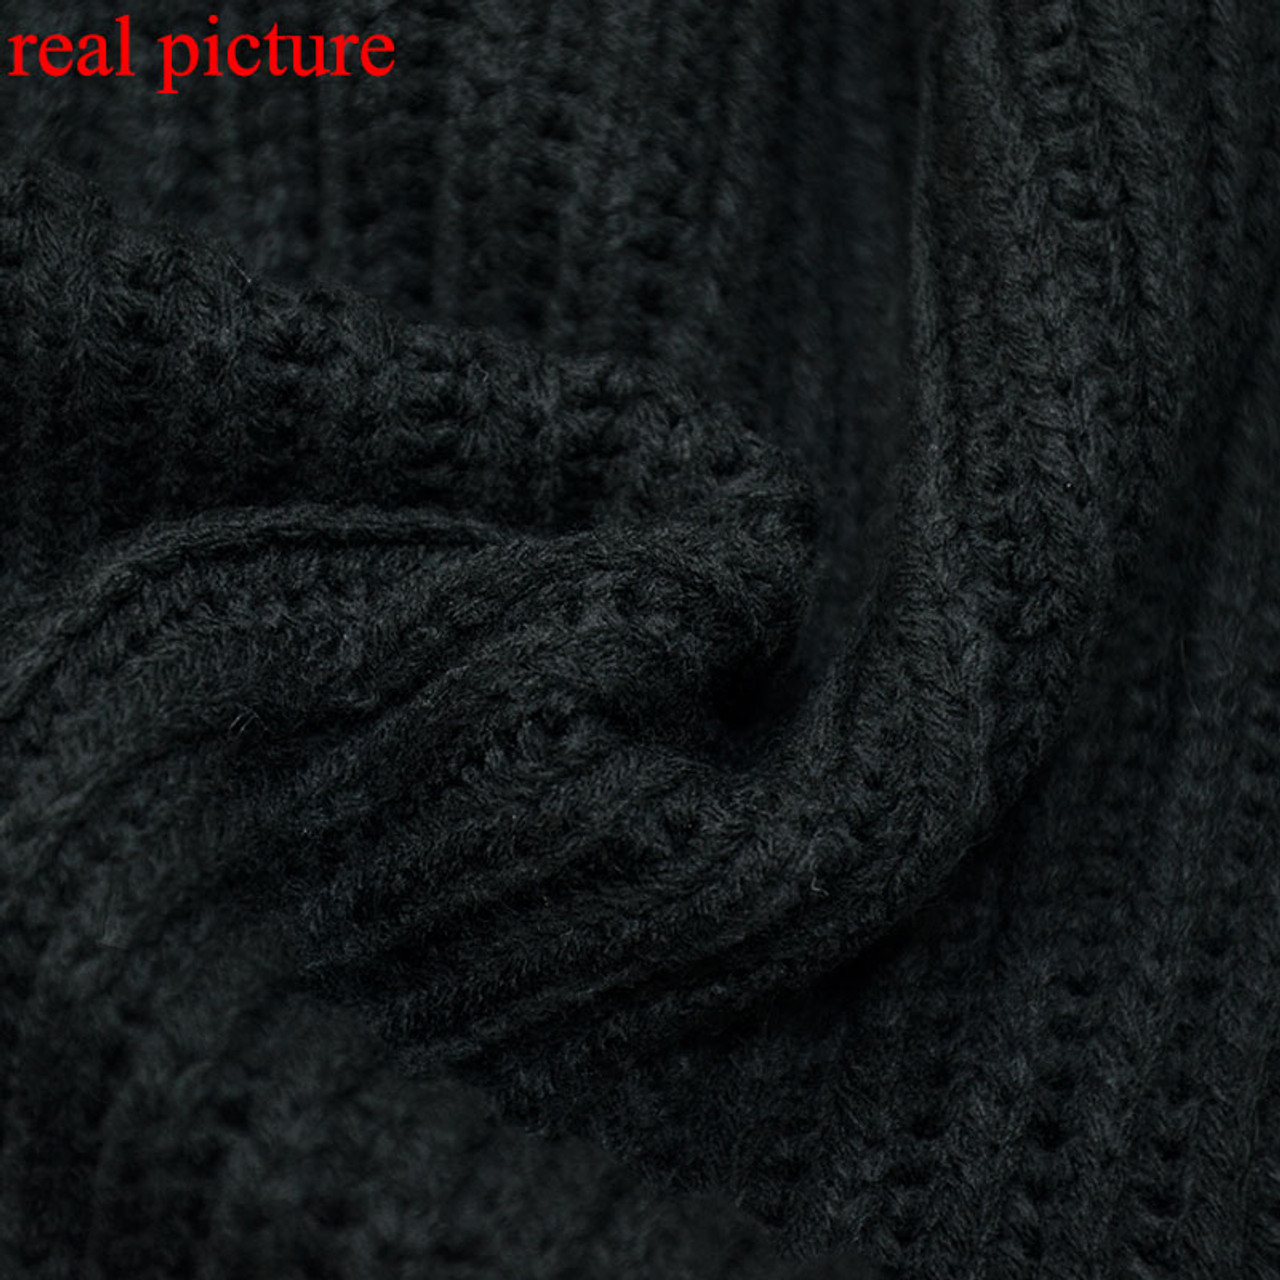 Casual Crop Sweater Autumn Winter Women Pullovers Knitted Short Basic Solid Slim